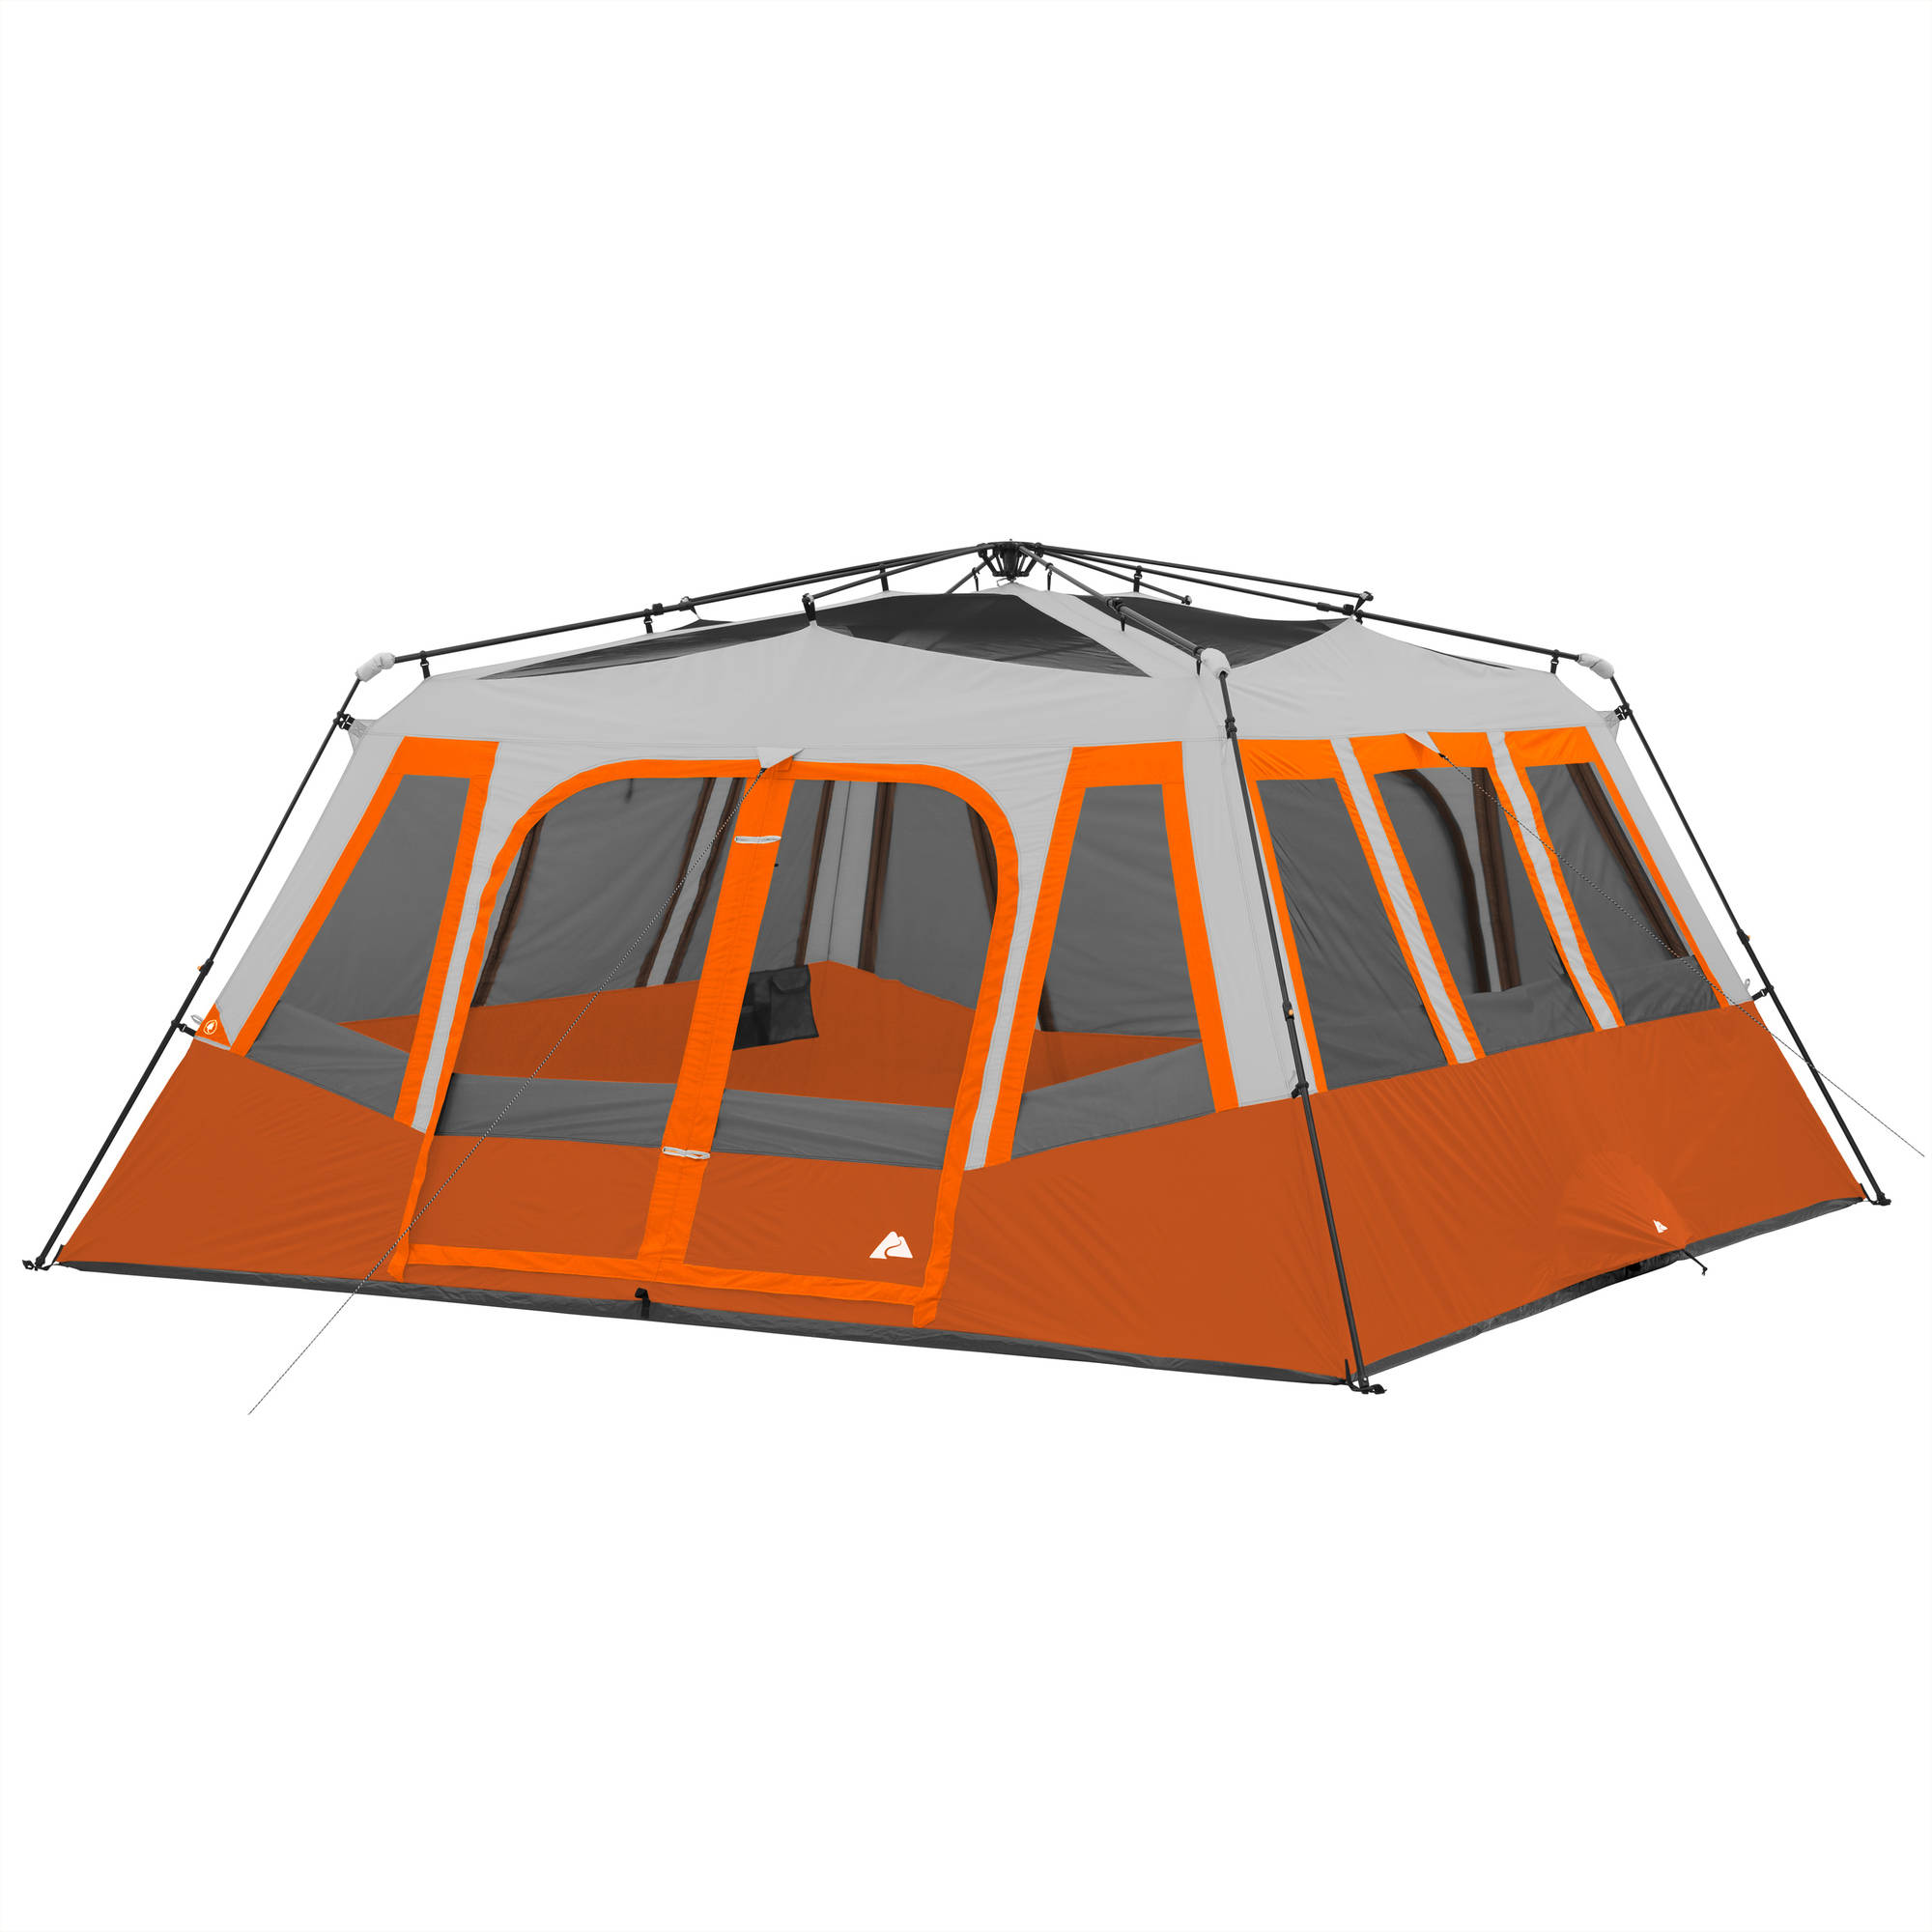 Ozark-Trail-14-Person-2-Room-Instant-Cabin-  sc 1 st  eBay & Ozark Trail 14-Person 2 Room Instant Cabin Tent | eBay